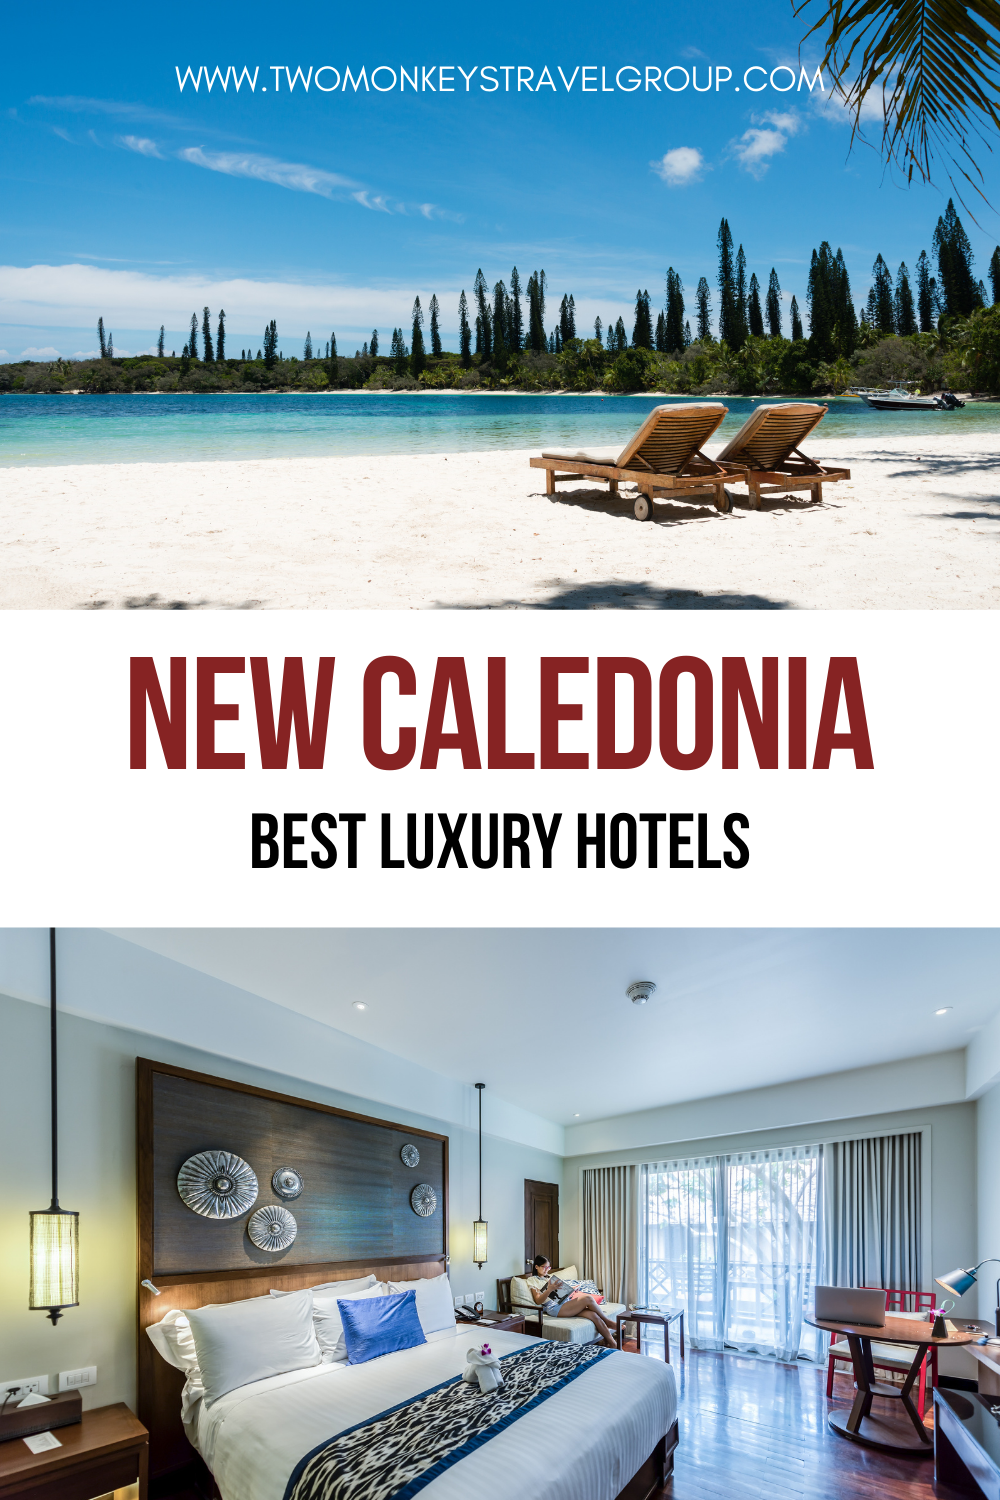 List of the Best Luxury Hotels in New Caledonia (Pacific Ocean)